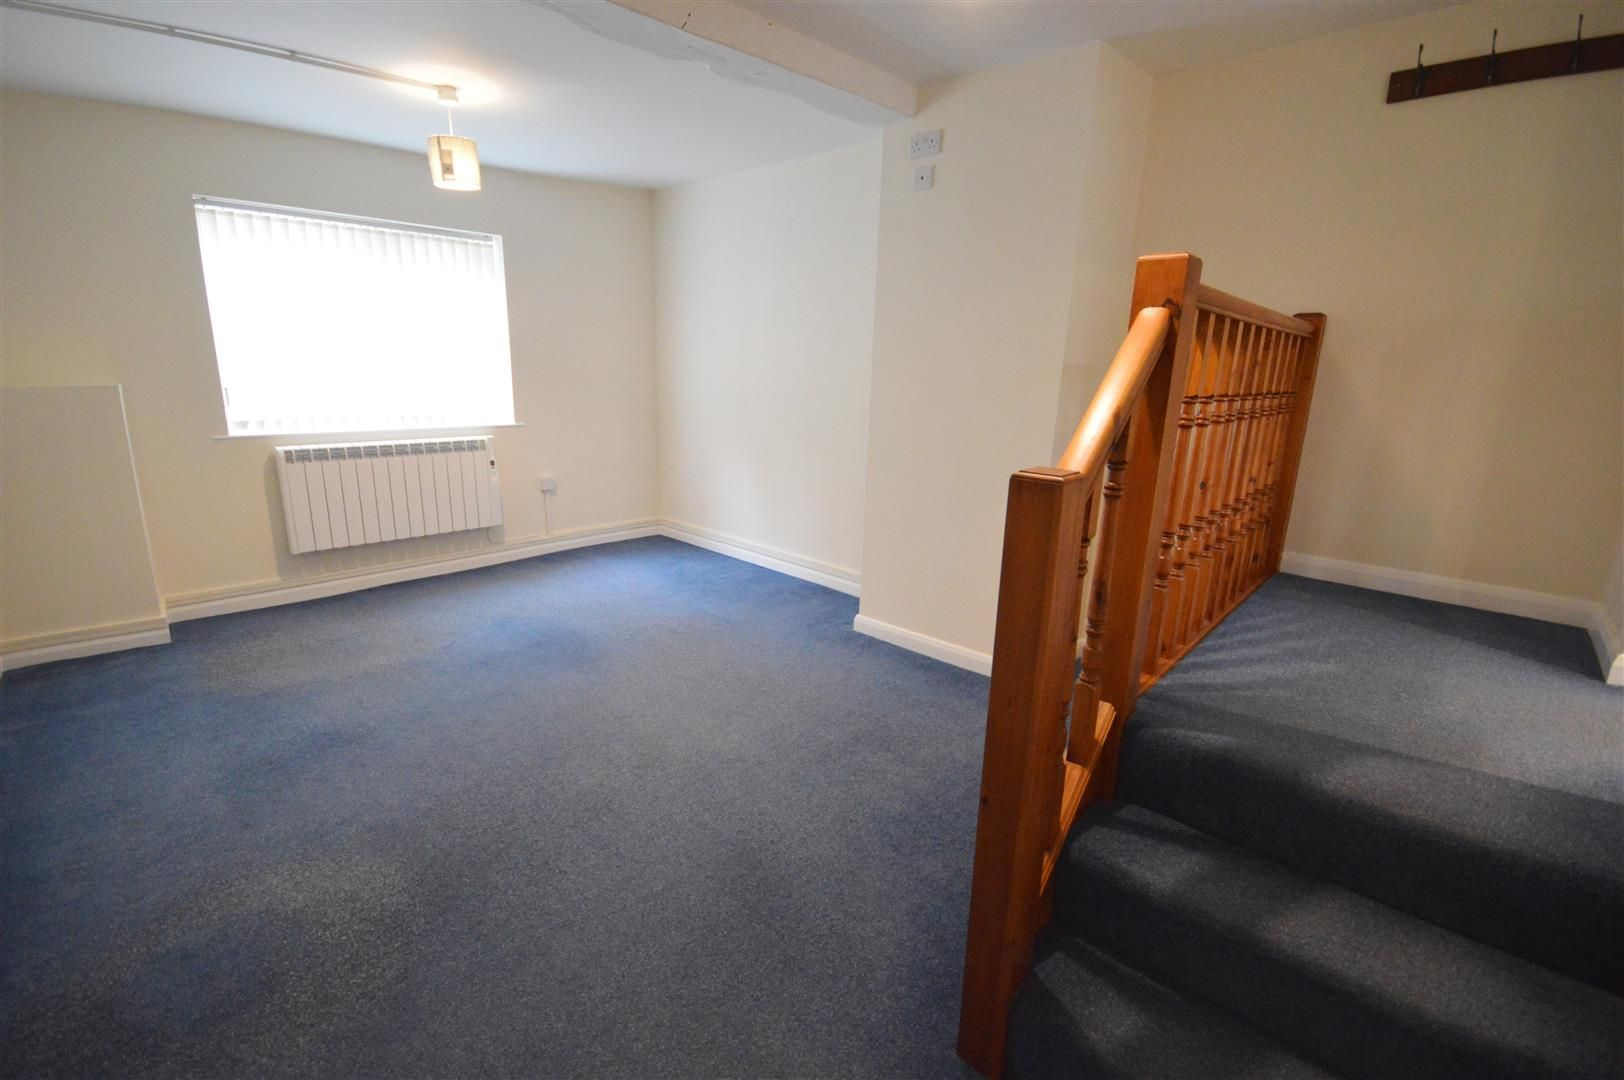 1 bed flat to rent in Leominster 2